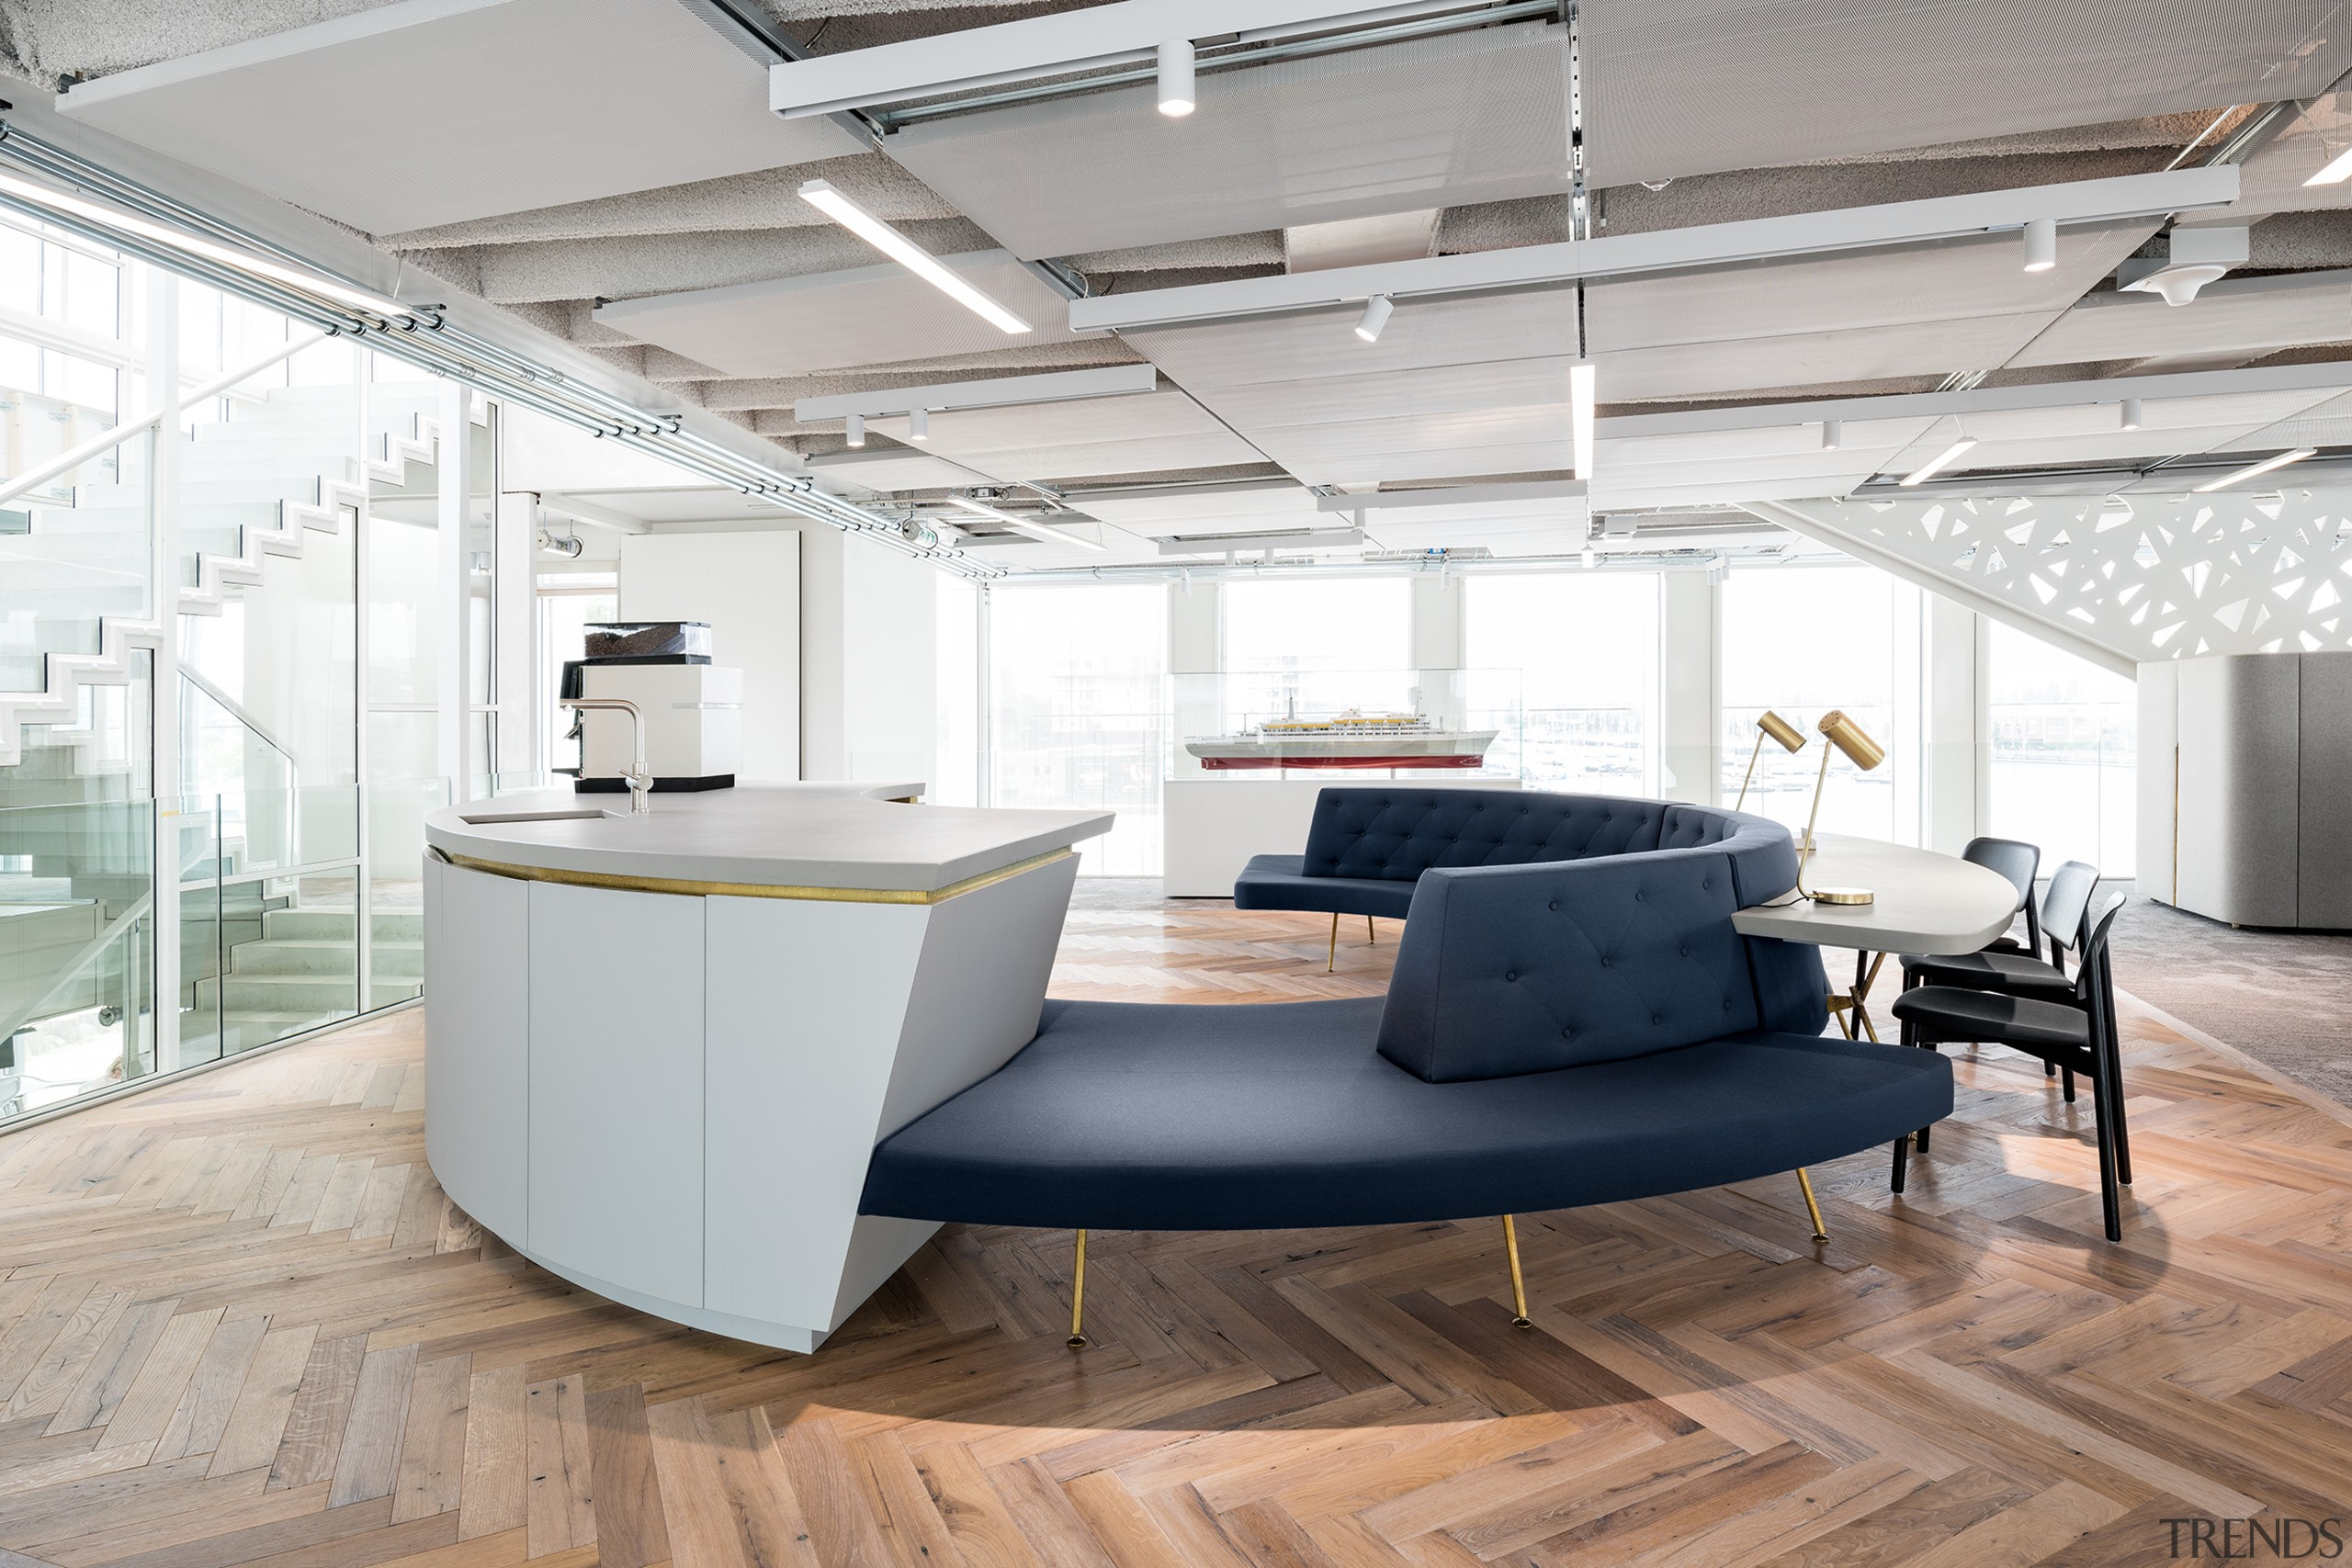 Rounded greeting – the circular reception area visitors architecture, building, ceiling, design, desk, floor, flooring, furniture, house, interior design, laminate flooring, loft, material property, office, office chair, property, room, space, table, wall, wood flooring, white